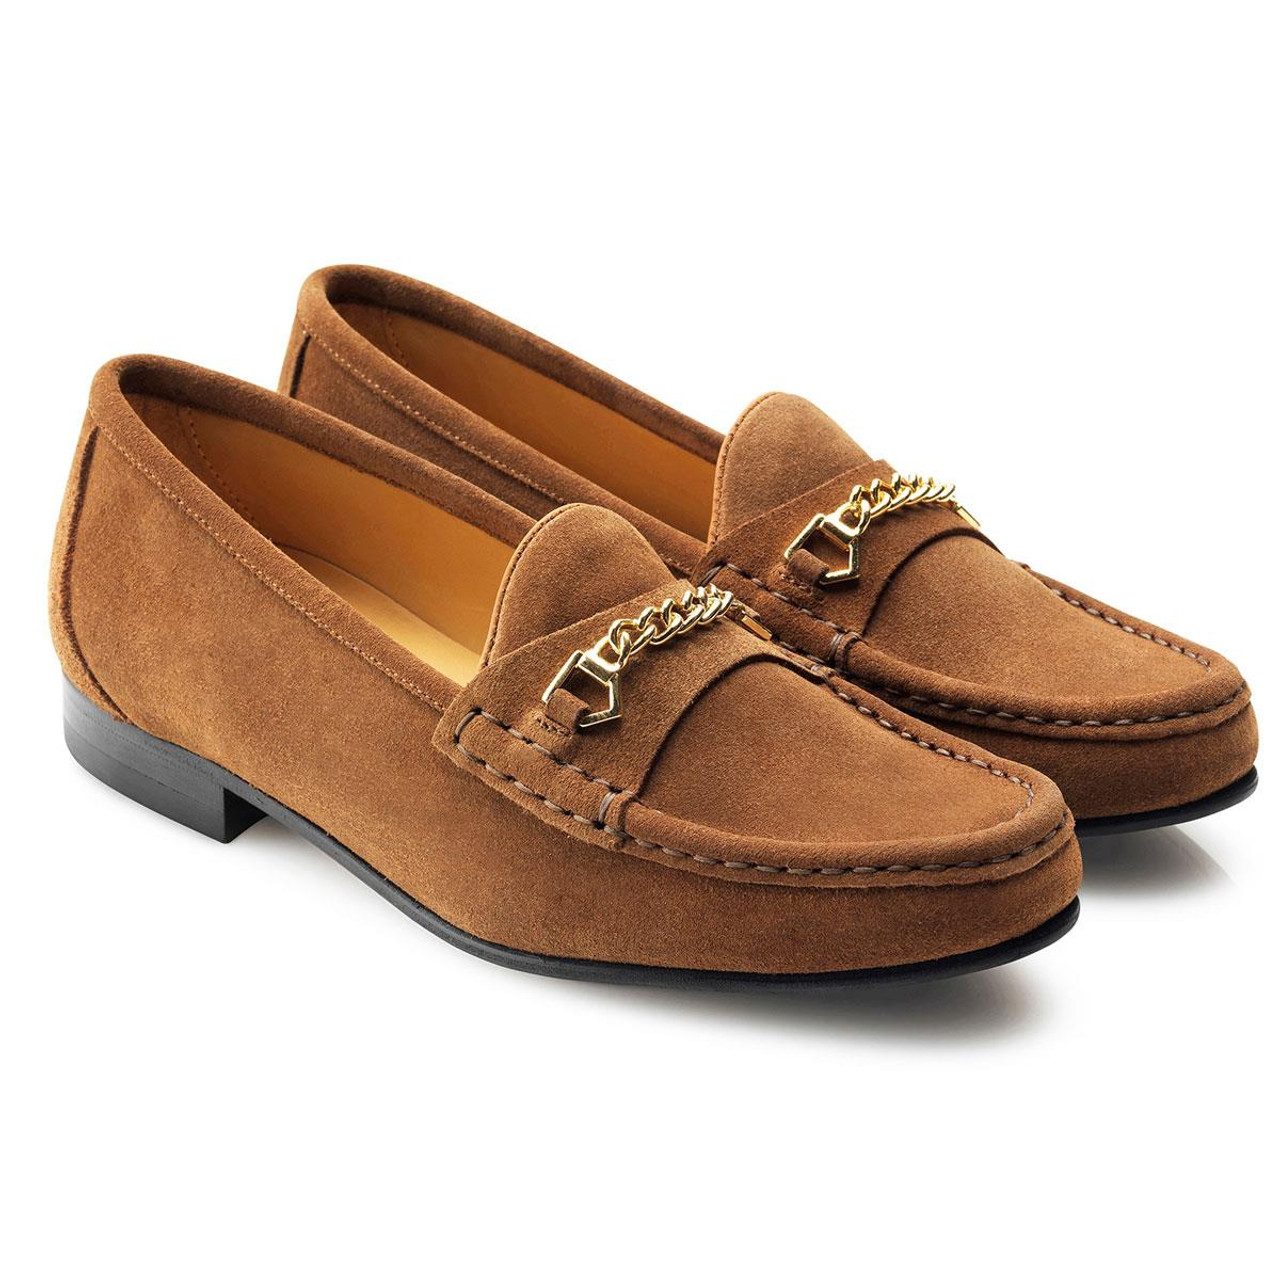 Fairfax & Favor Apsley Suede Loafer